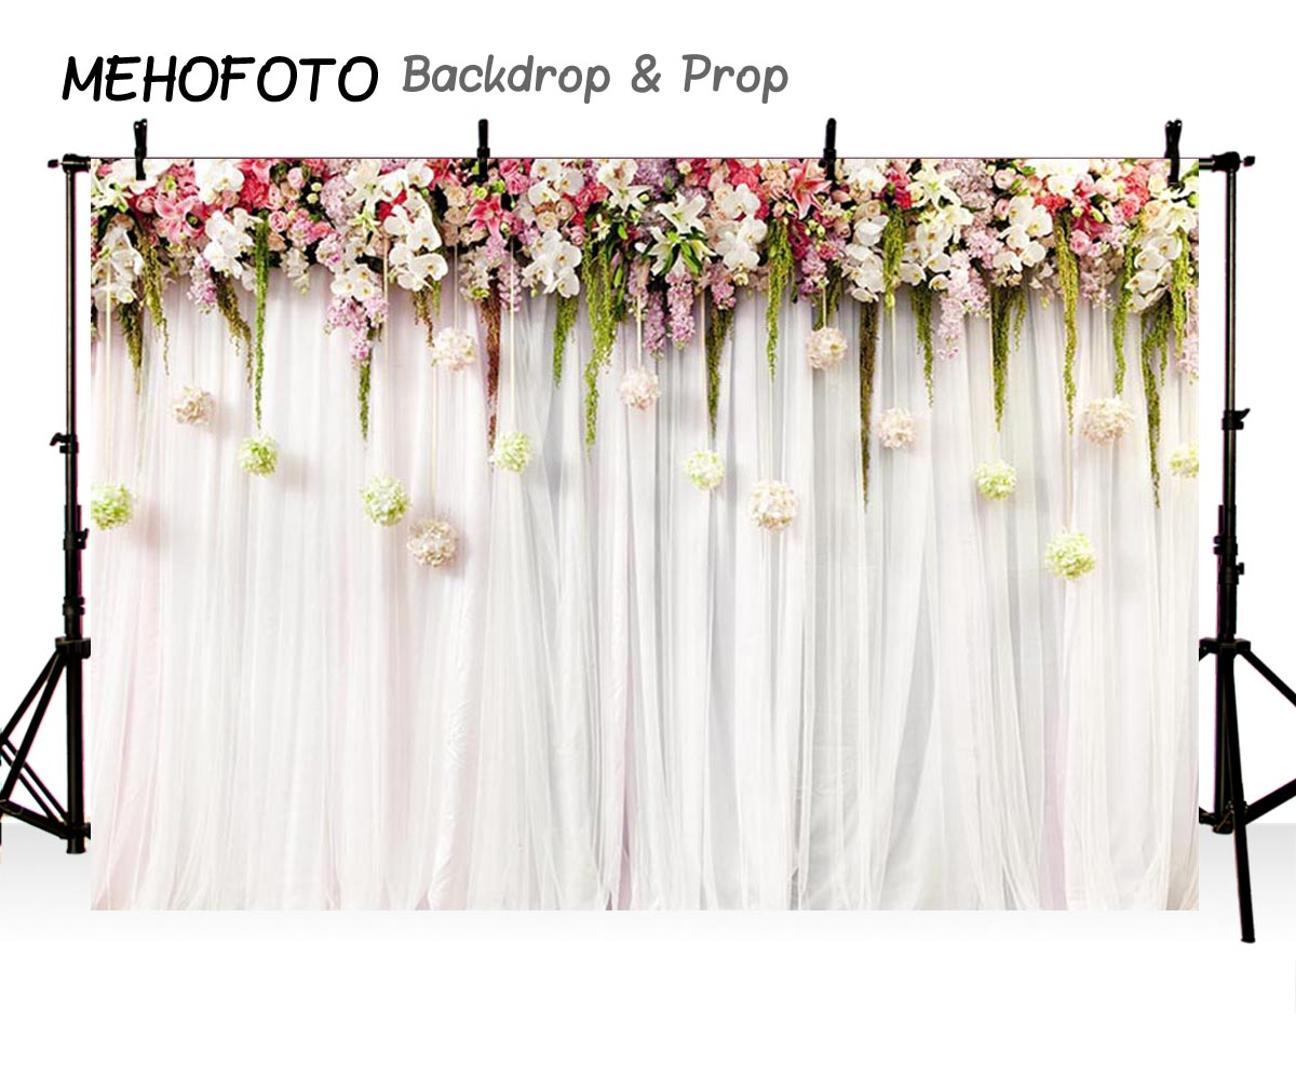 2019 Mehofoto Customize Wedding Stage Photography Backdropwedding Invitation Floral Wall Photobooth Background Photo Prop From Facfast 3412